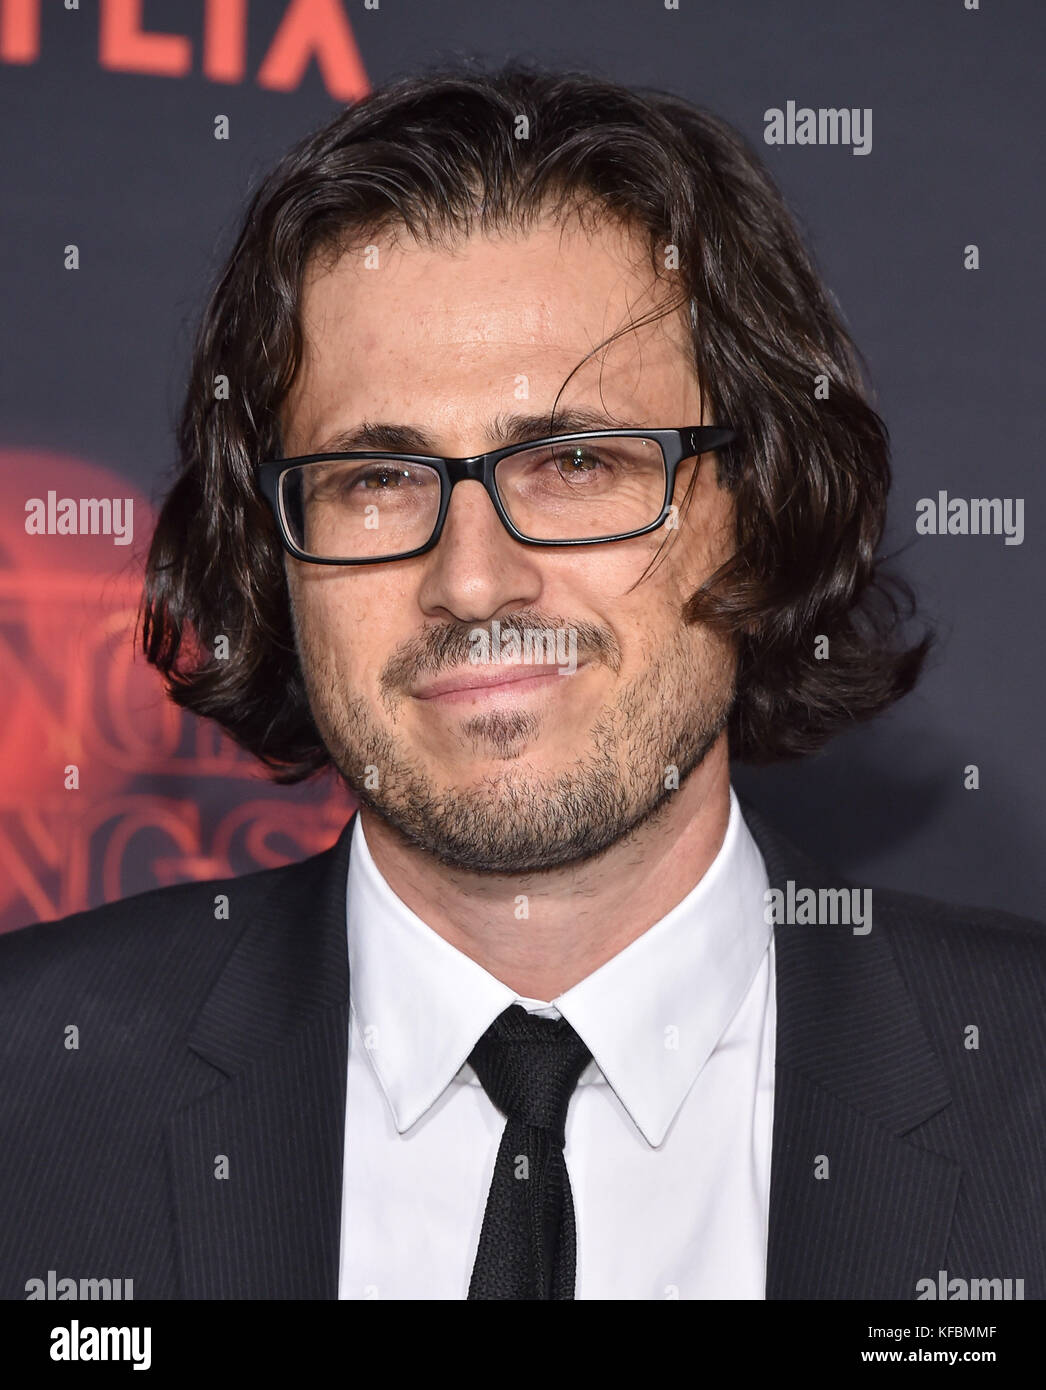 Westwood, California, USA. 26th Oct, 2017. Dan Cohen arrives for the Netflix 'Stranger Things' 2 Premiere - Stock Image